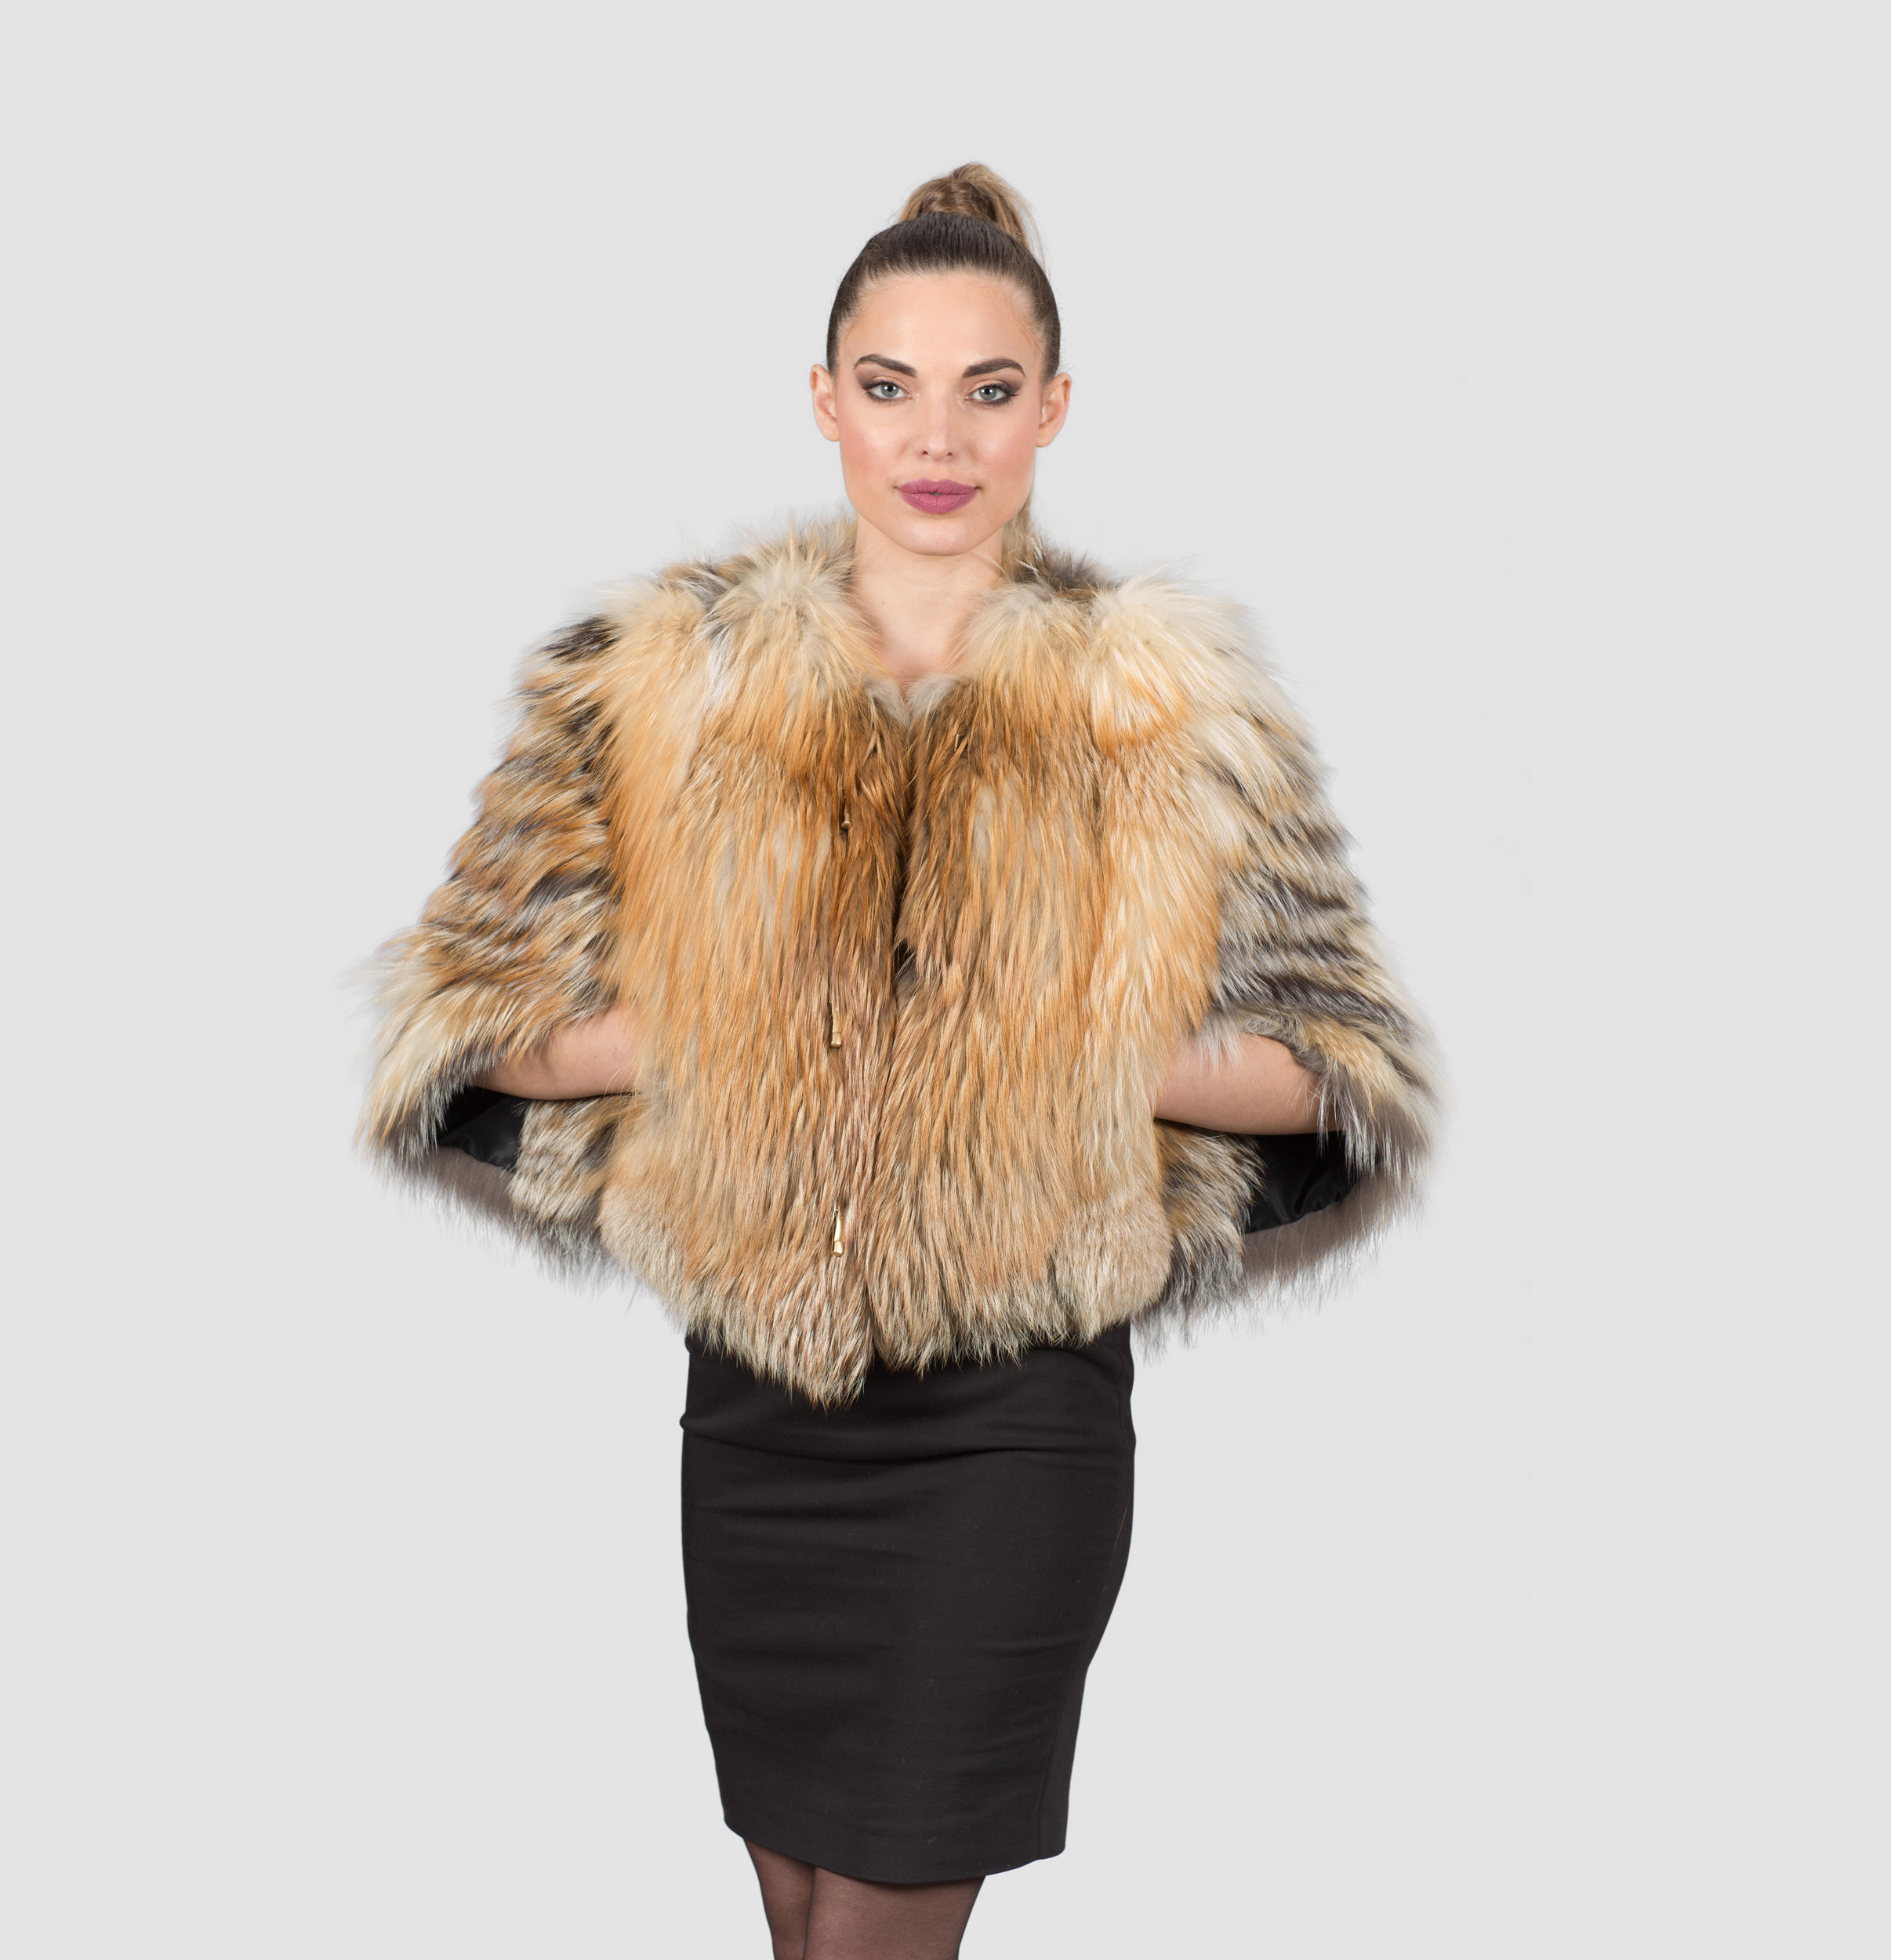 Silver-Gold Fox Fur Jacket. 100% Real Fur Coats and Accessories.